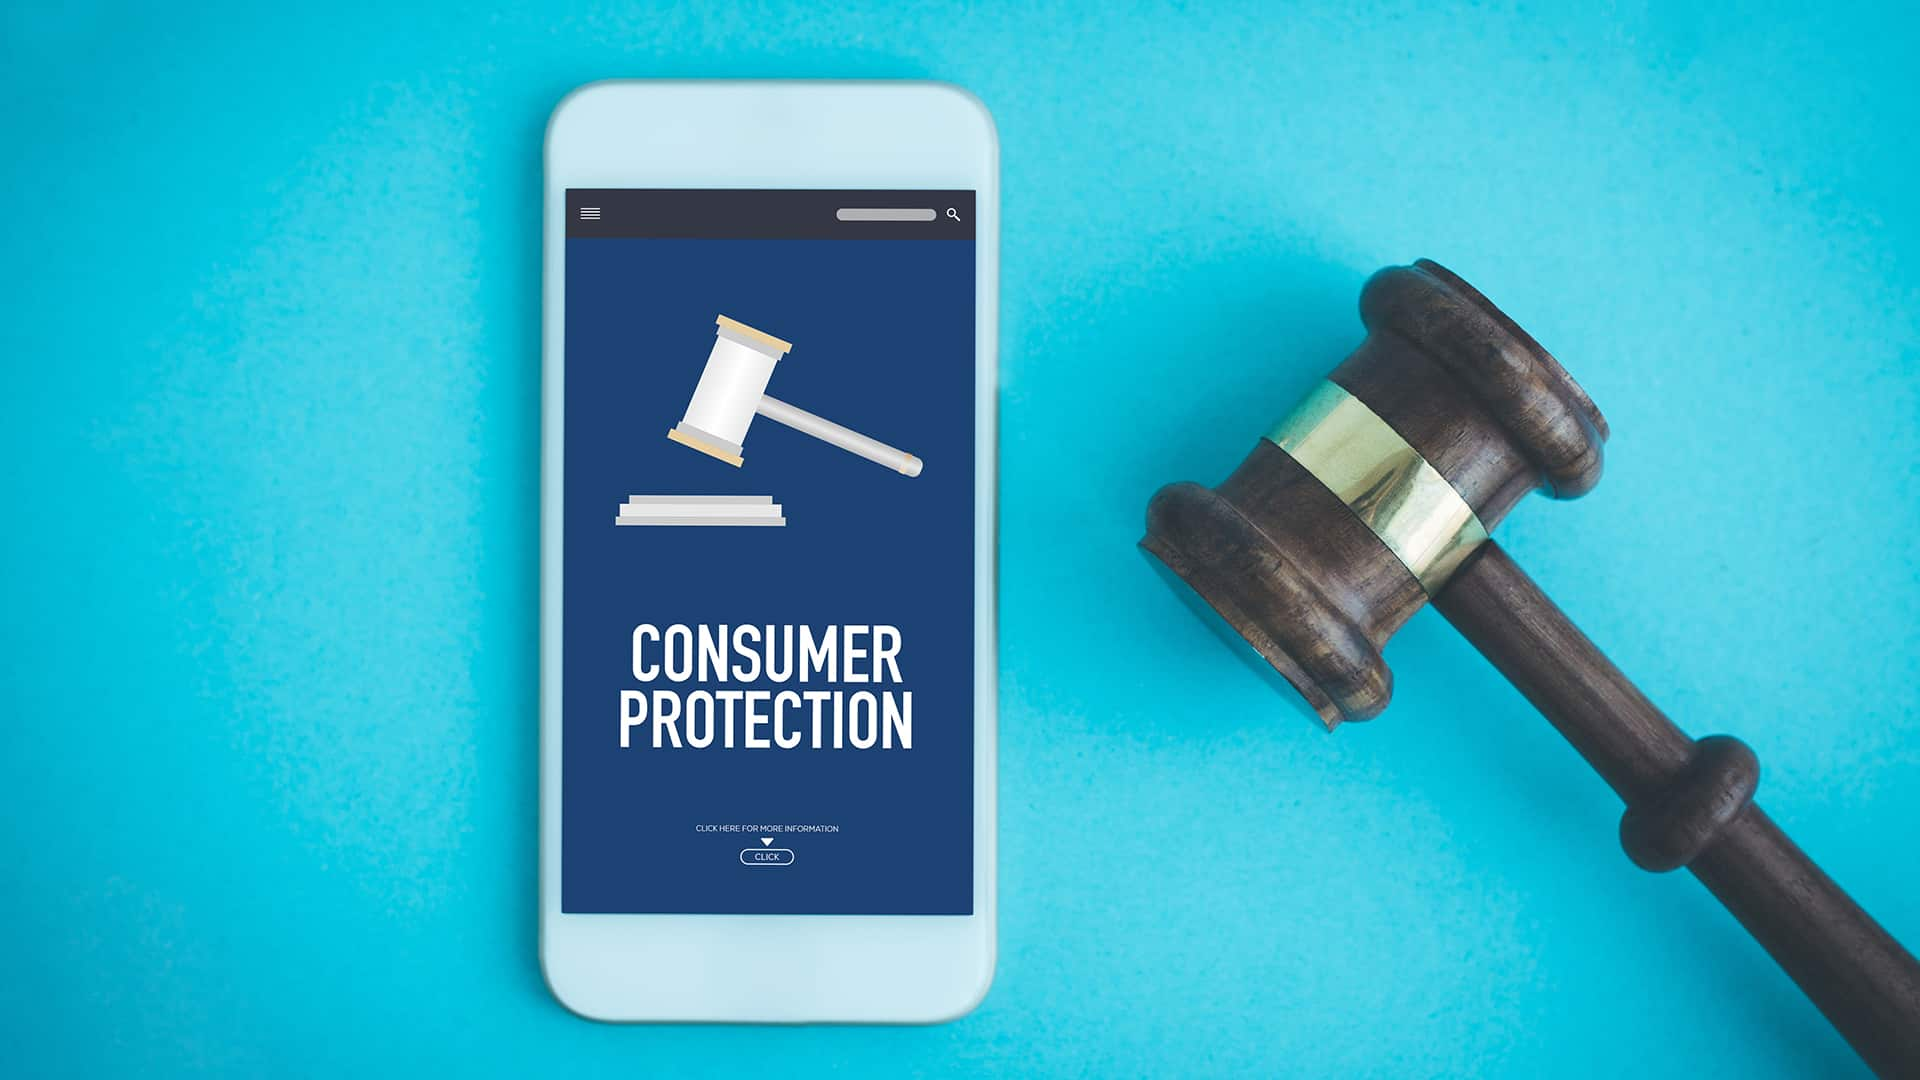 image depicting consumer protection